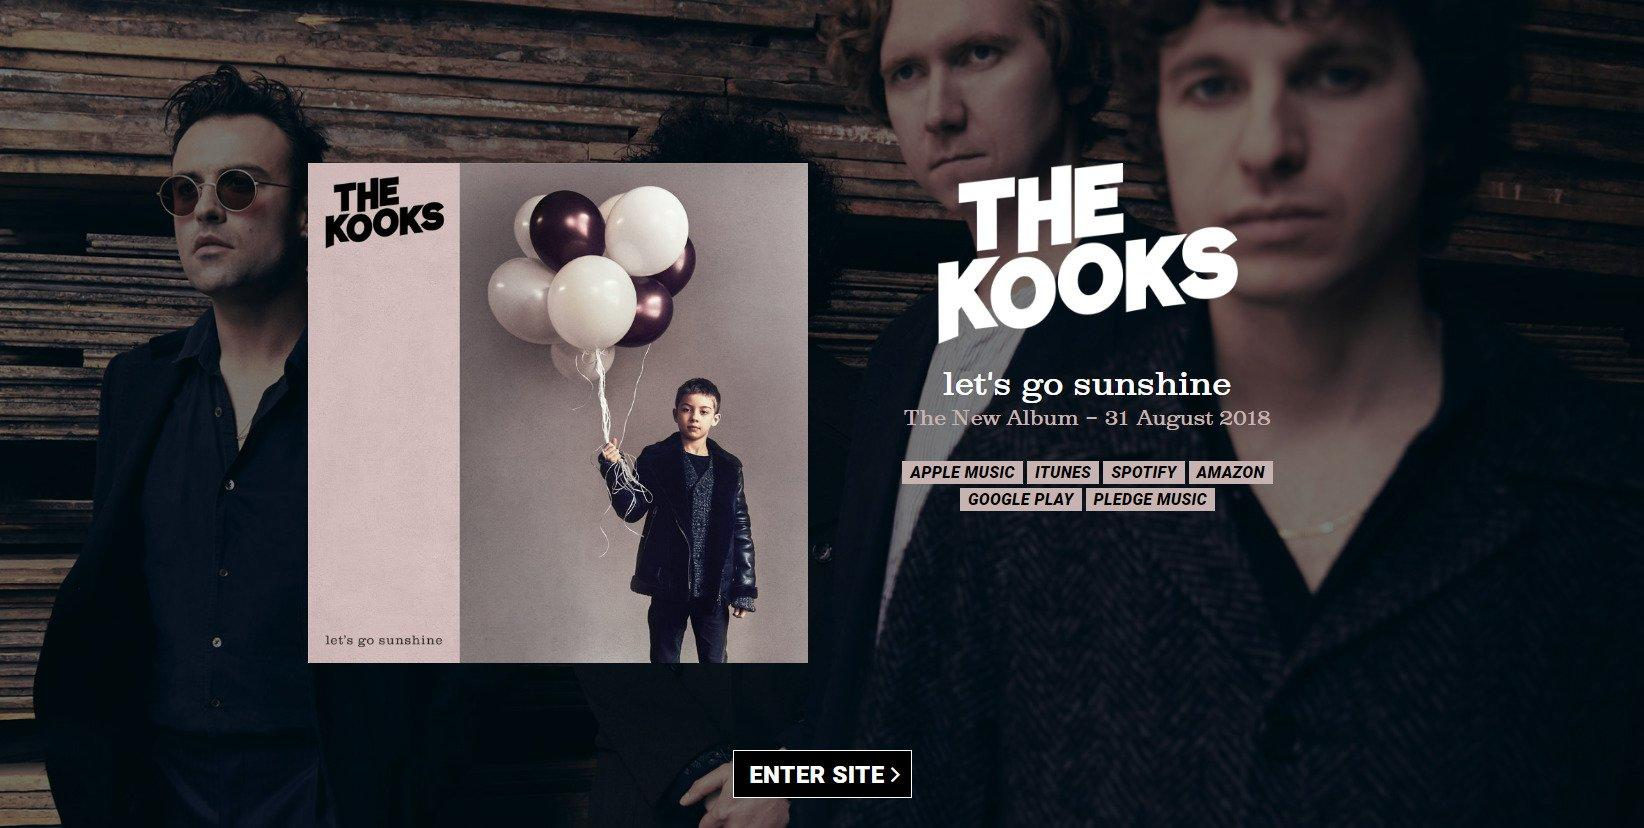 kooks-homepage-music-marketing-tips